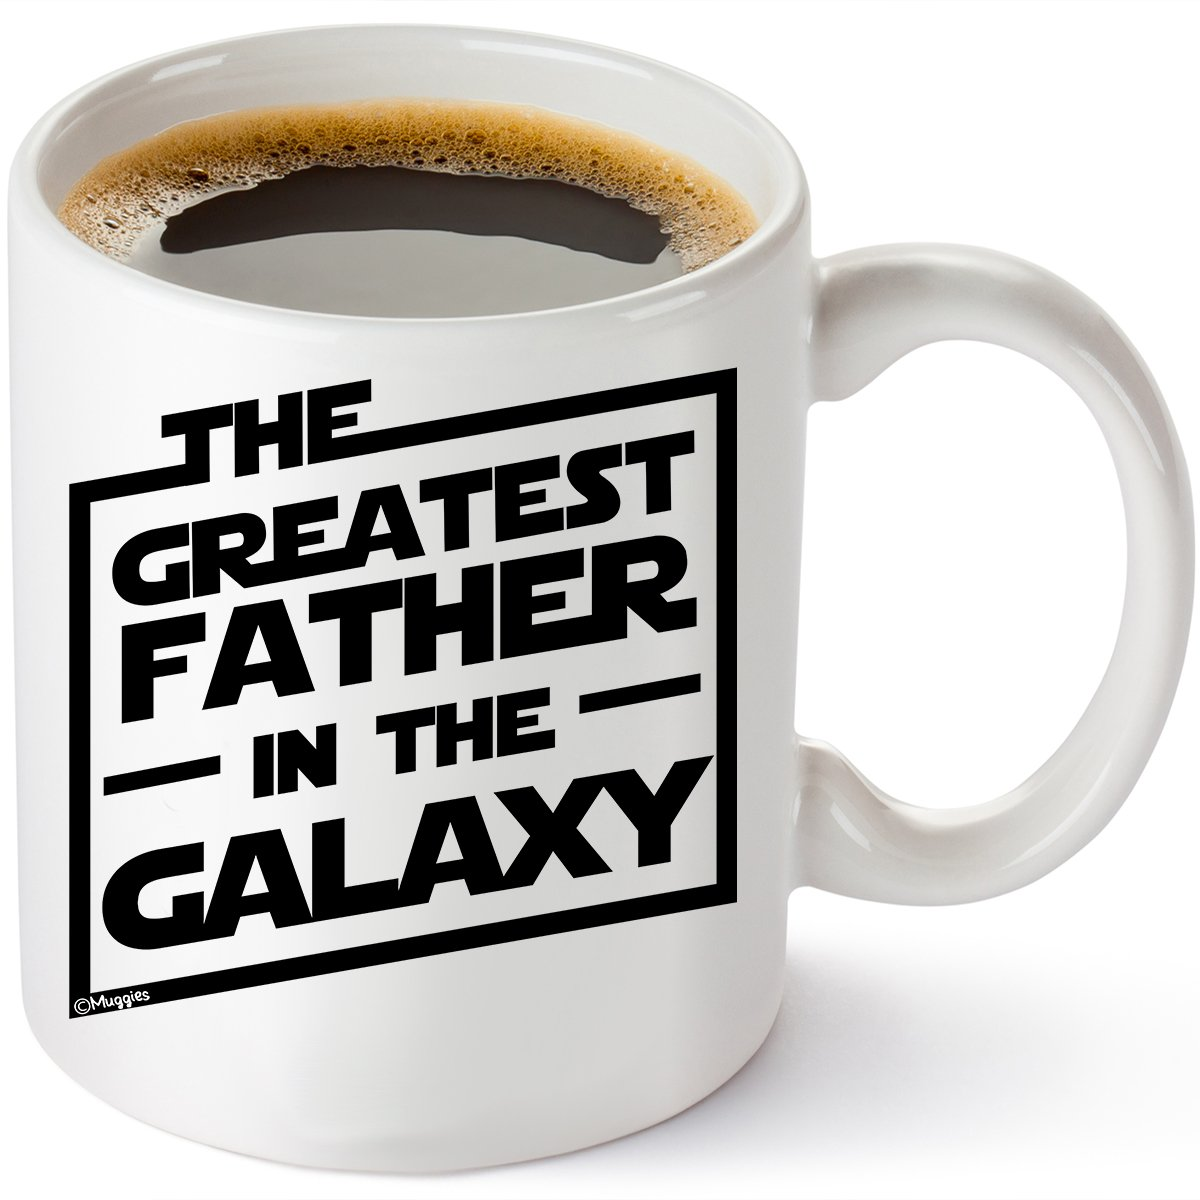 Muggies Greatest Father in The Galaxy 11oz. Coffee Tea Mug. Unique Funny Christmas, Xmas, Birthday, for Him - Super Star Men, Dad, Husband by GENUTRI (Image #1)